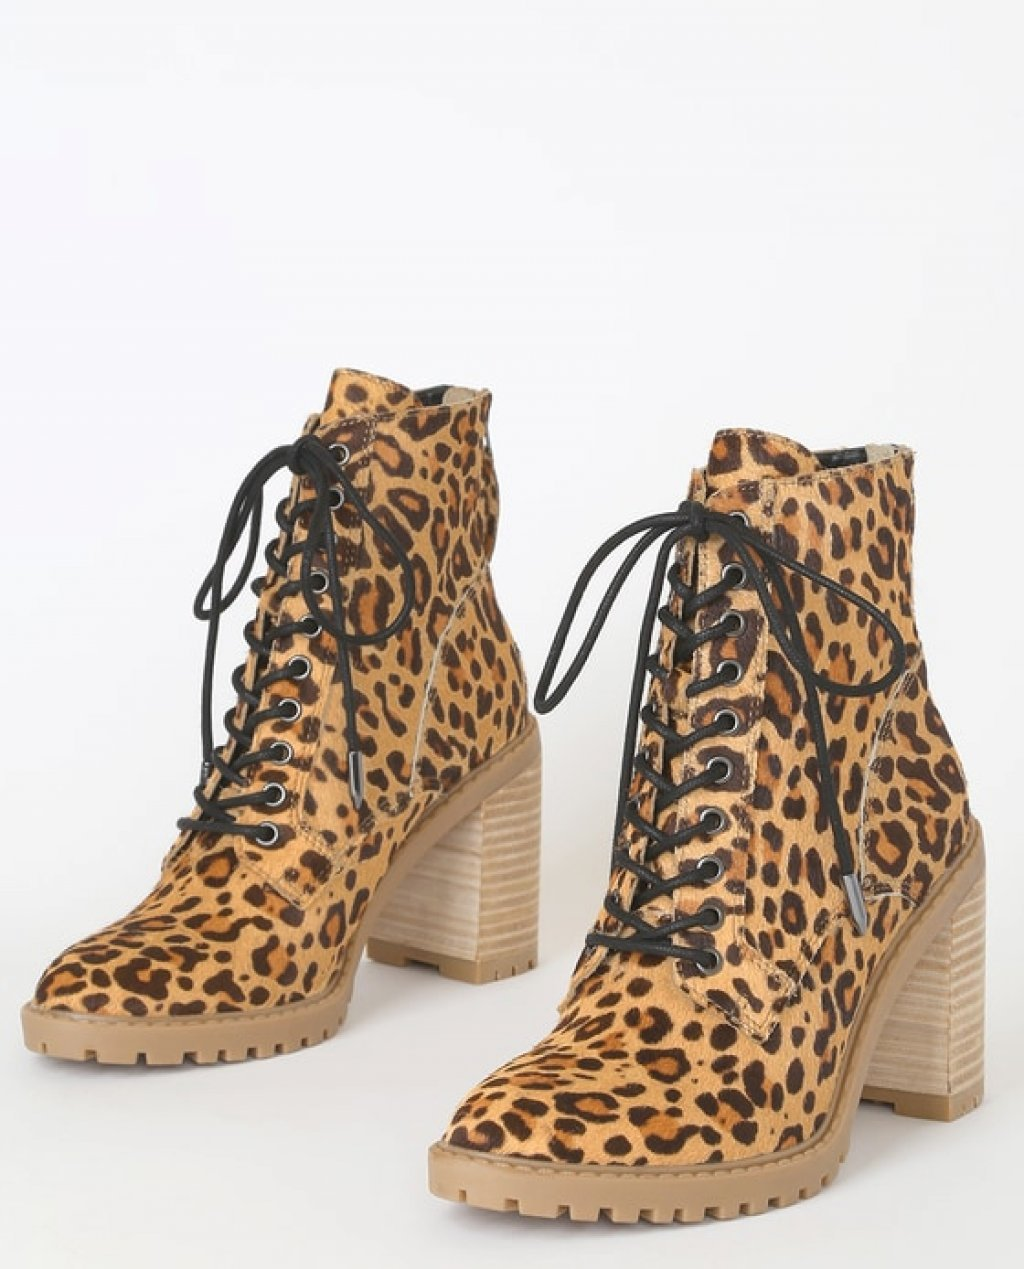 Norma Dark Leopard Calf Hair Lace-Up Ankle High Heel Boots